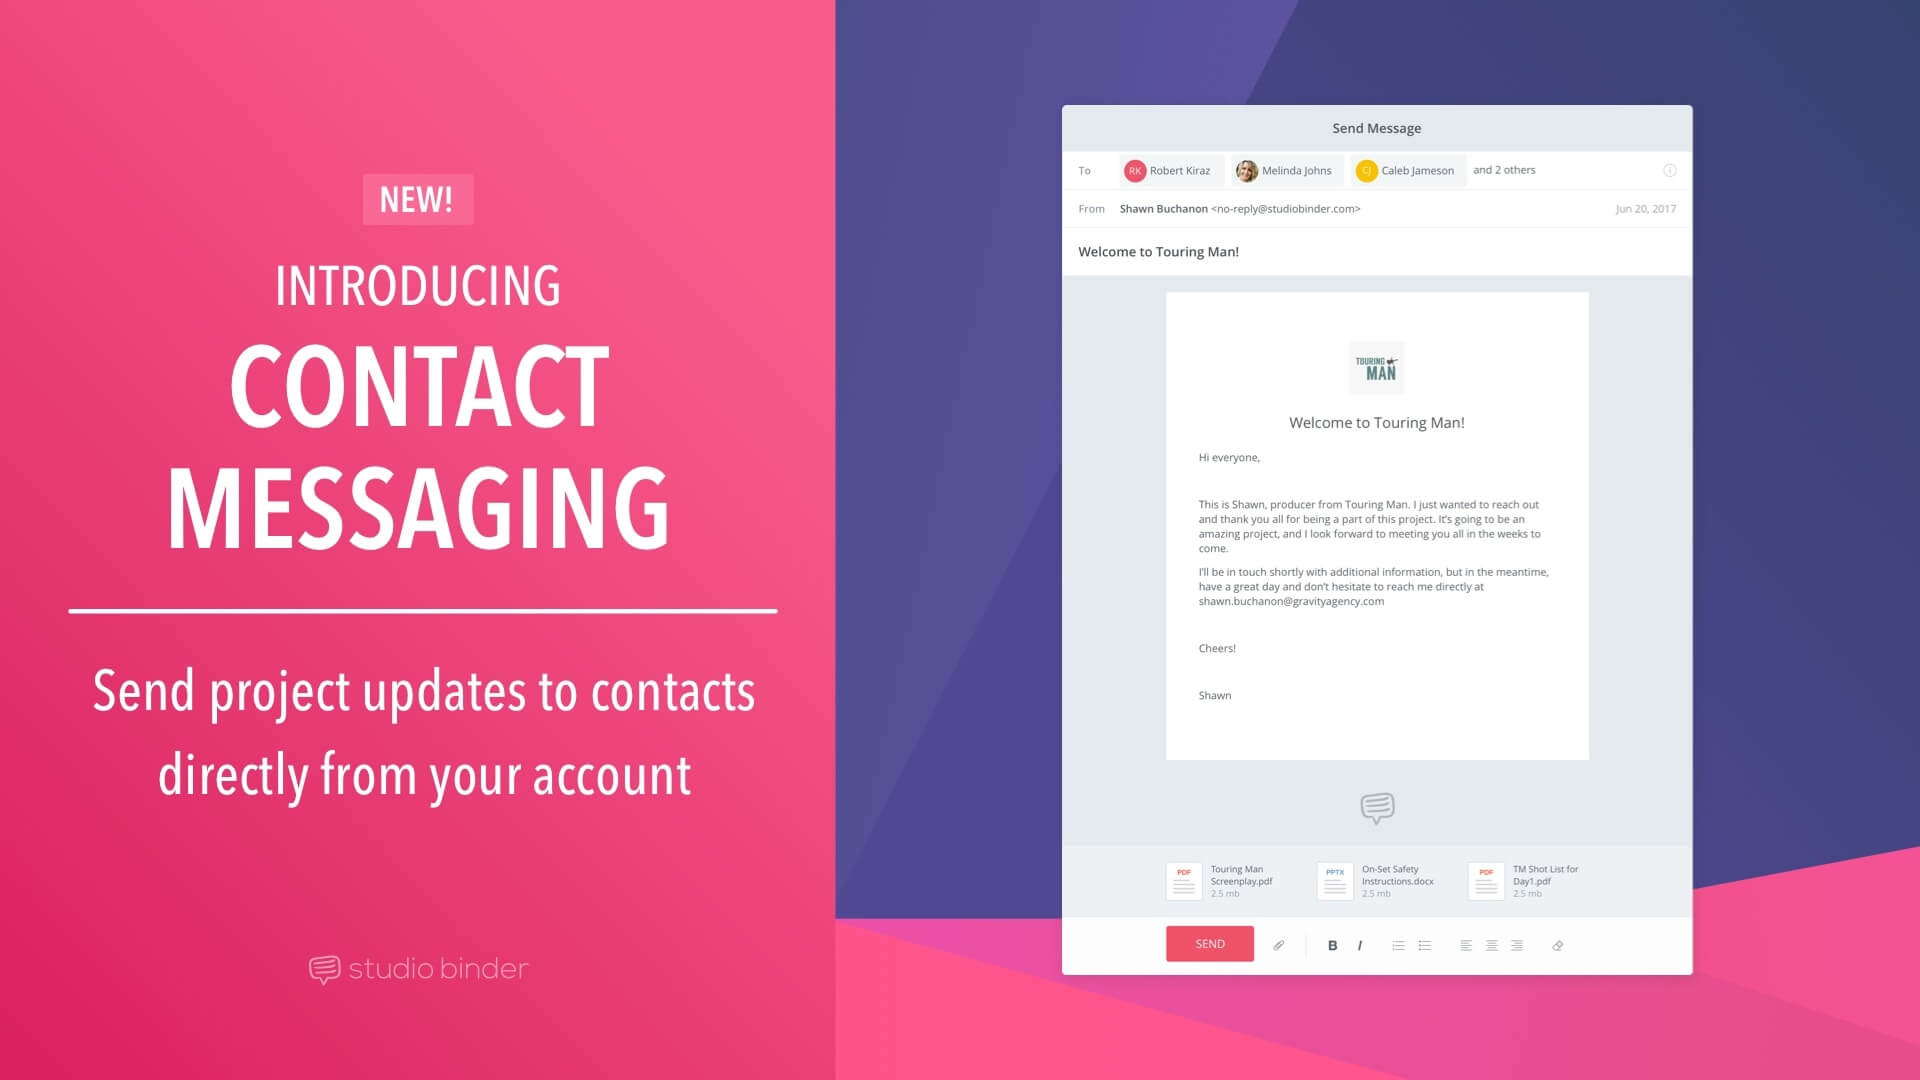 New Release - Introducing Contact Messaging - Featured - StudioBinder